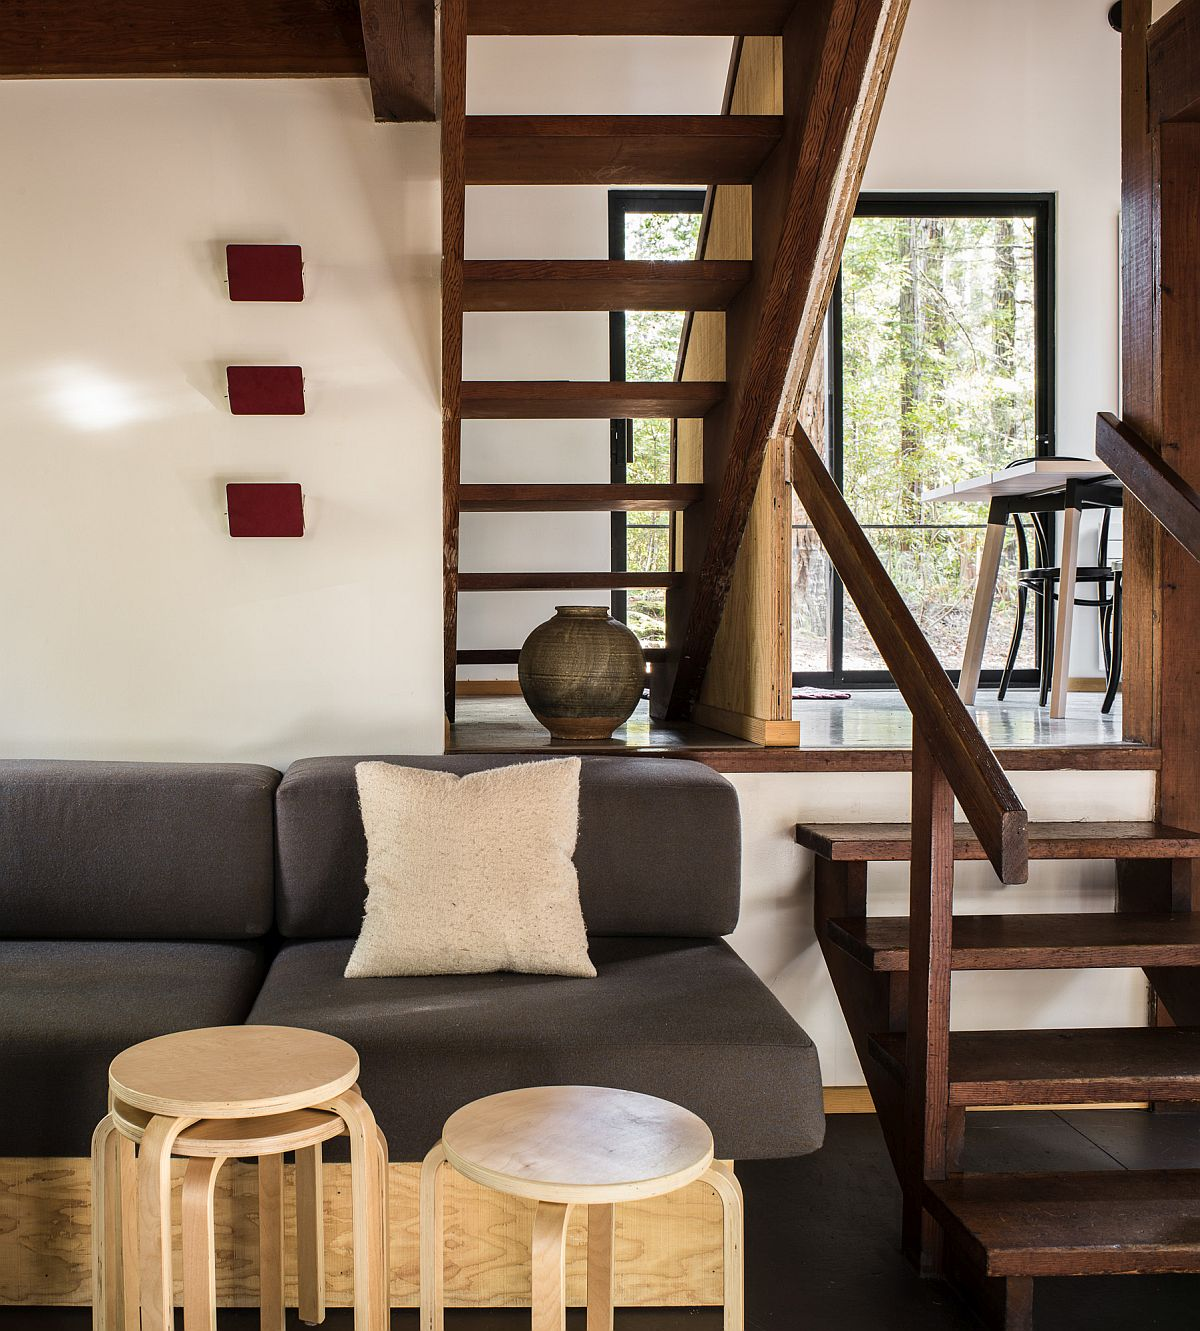 Living room of the woodsy cabin set among California's beautiful wilderness